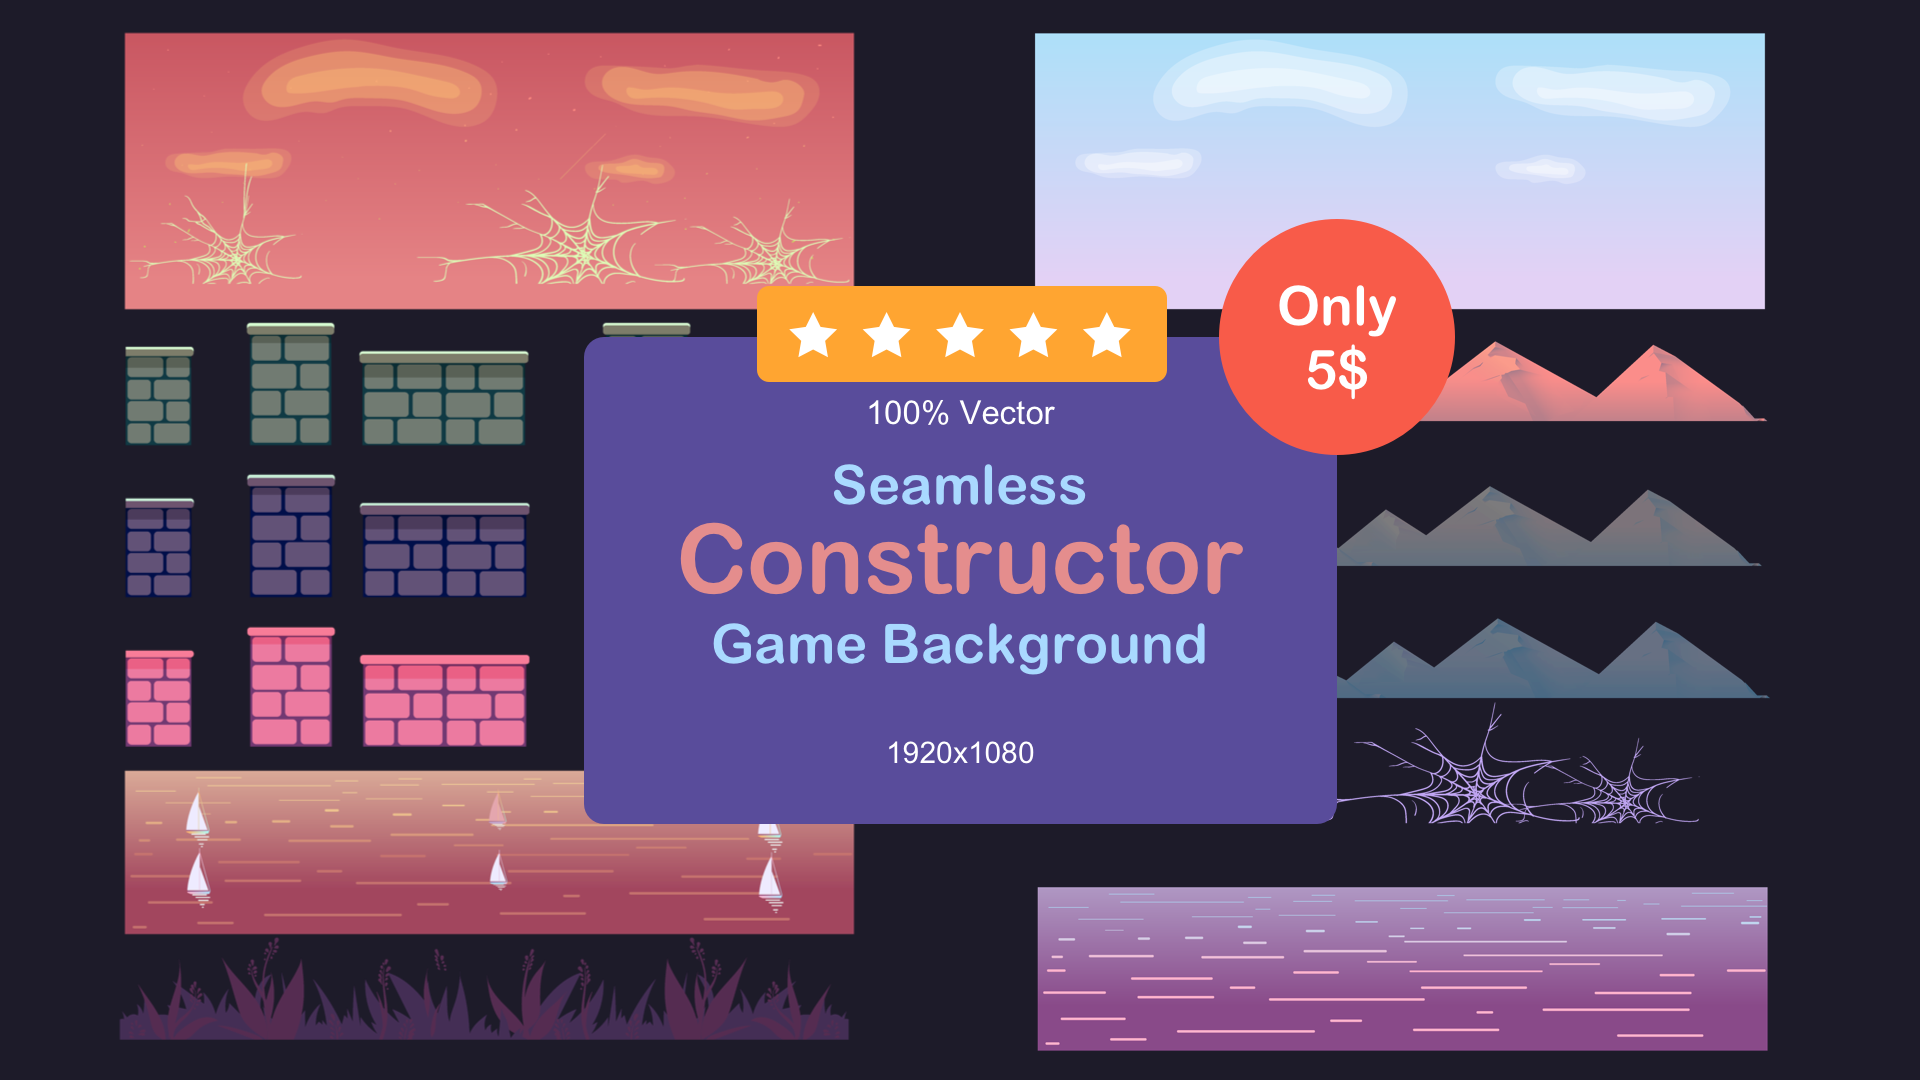 Game Background Constructor